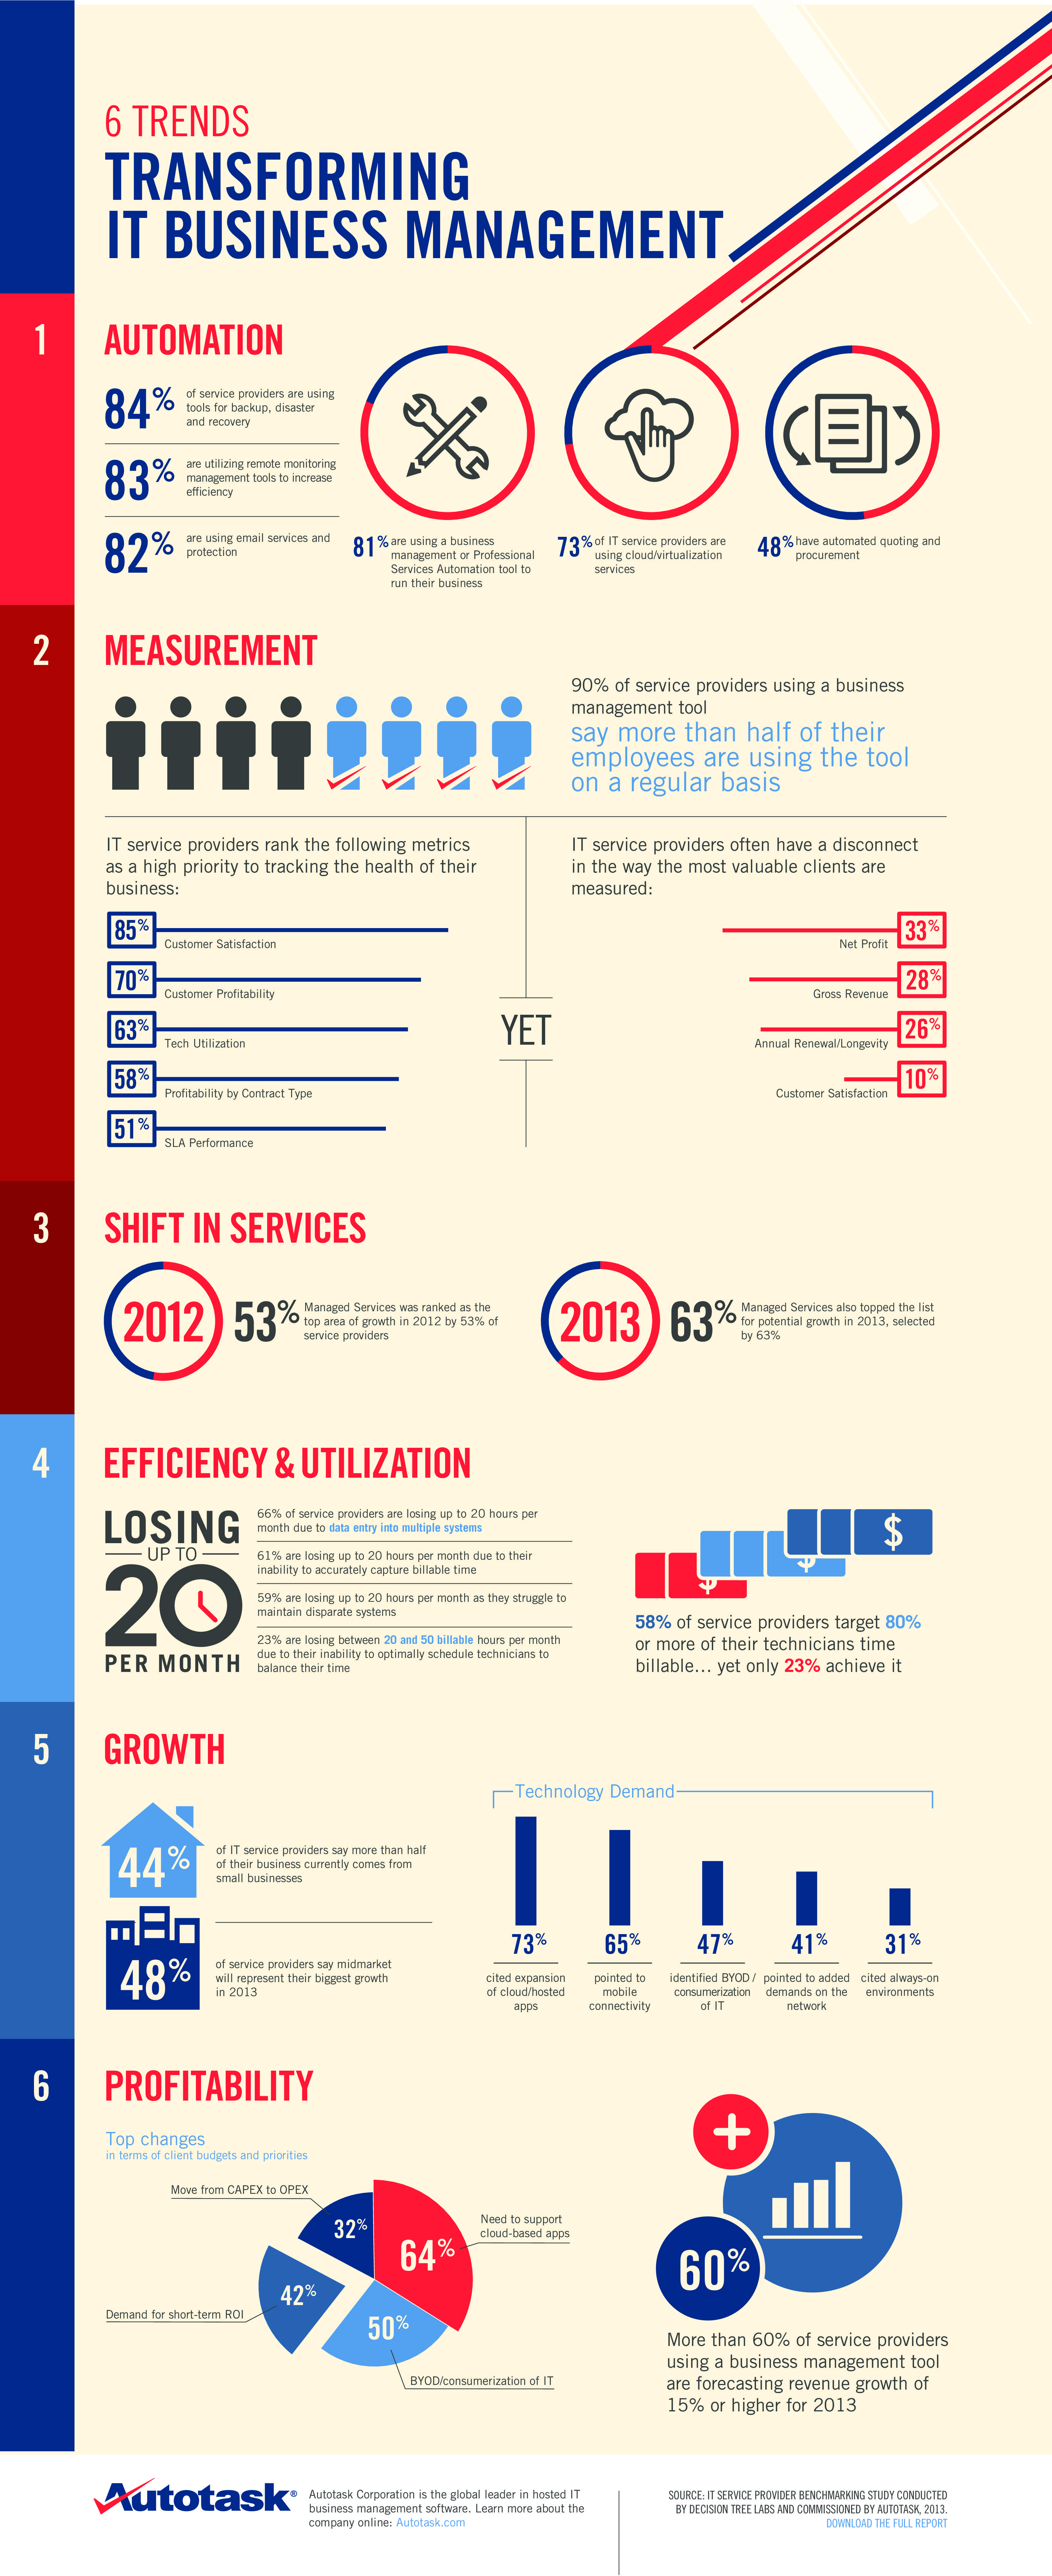 Information technology infrastructure library itil information 6 trends transforming it business management infographic from autotask xflitez Gallery